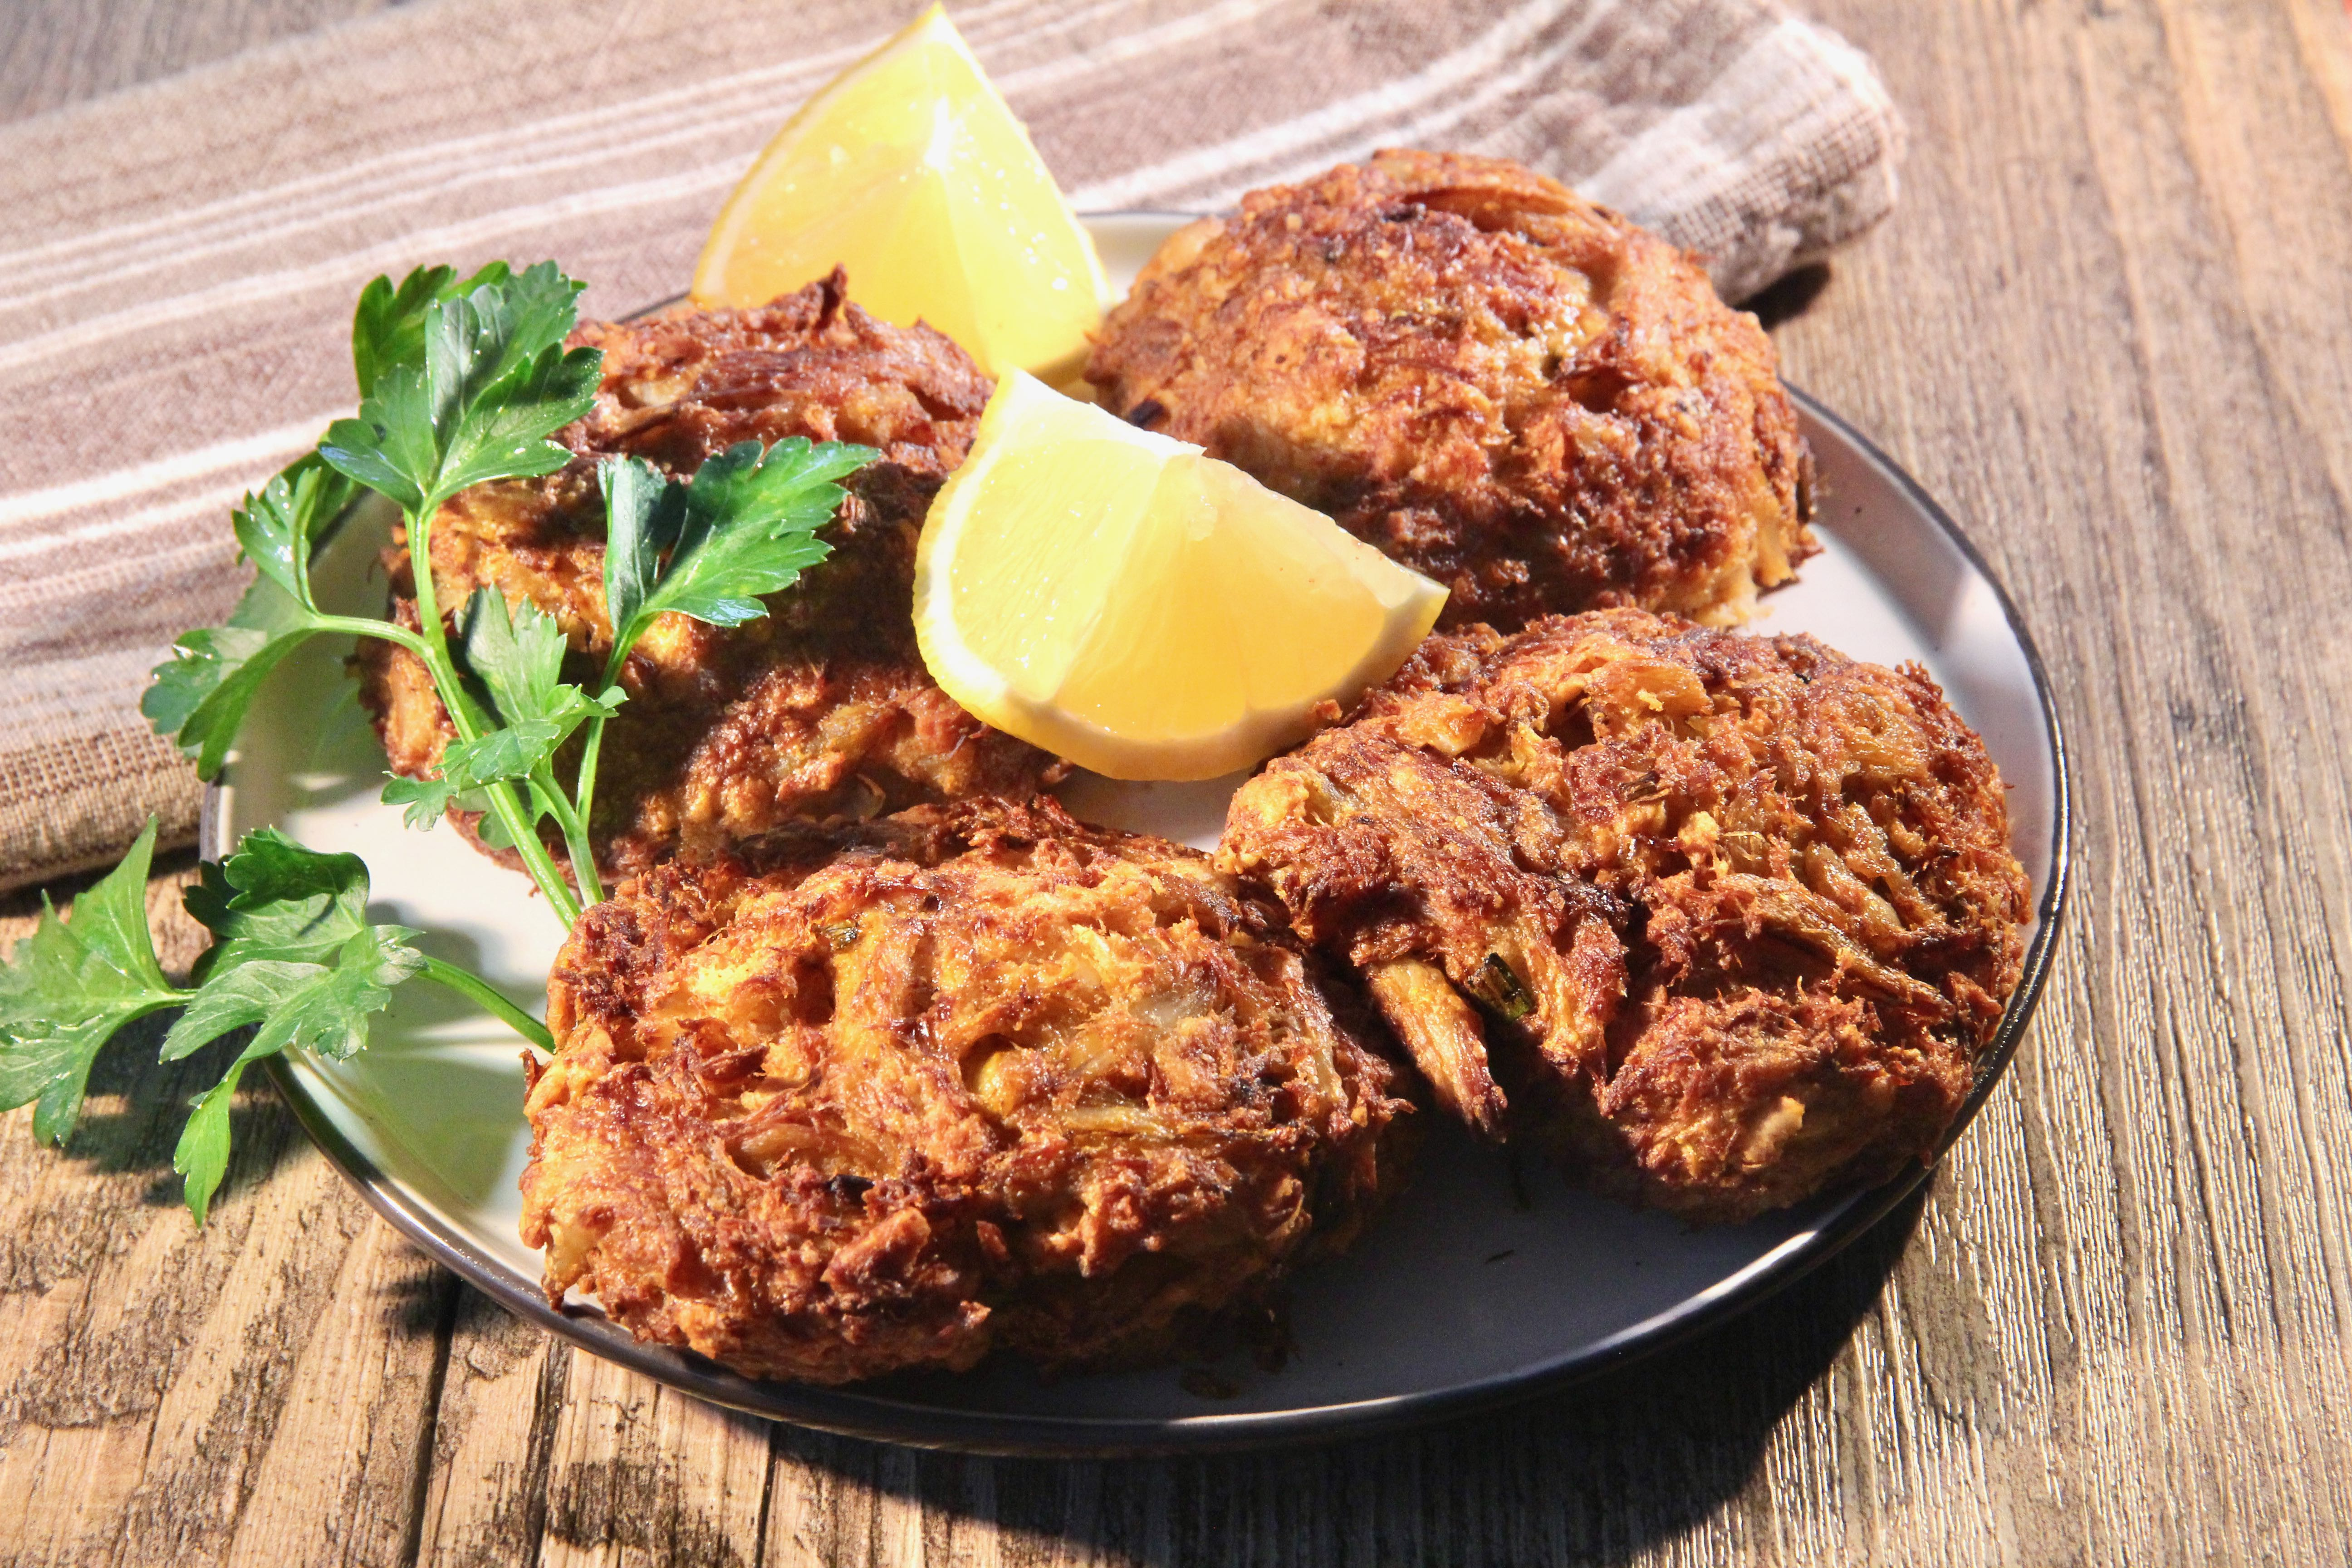 """""""Air frying crab cakes means less mess and less cleanup, but at no sacrifice to taste,"""" says lutzflcat. """"They're flavorful, crisp, and lighter than if cooked with oil in a skillet. Serve with your favorite dipping sauce, aioli, or tartar sauce, as well as fresh lemon wedges."""""""